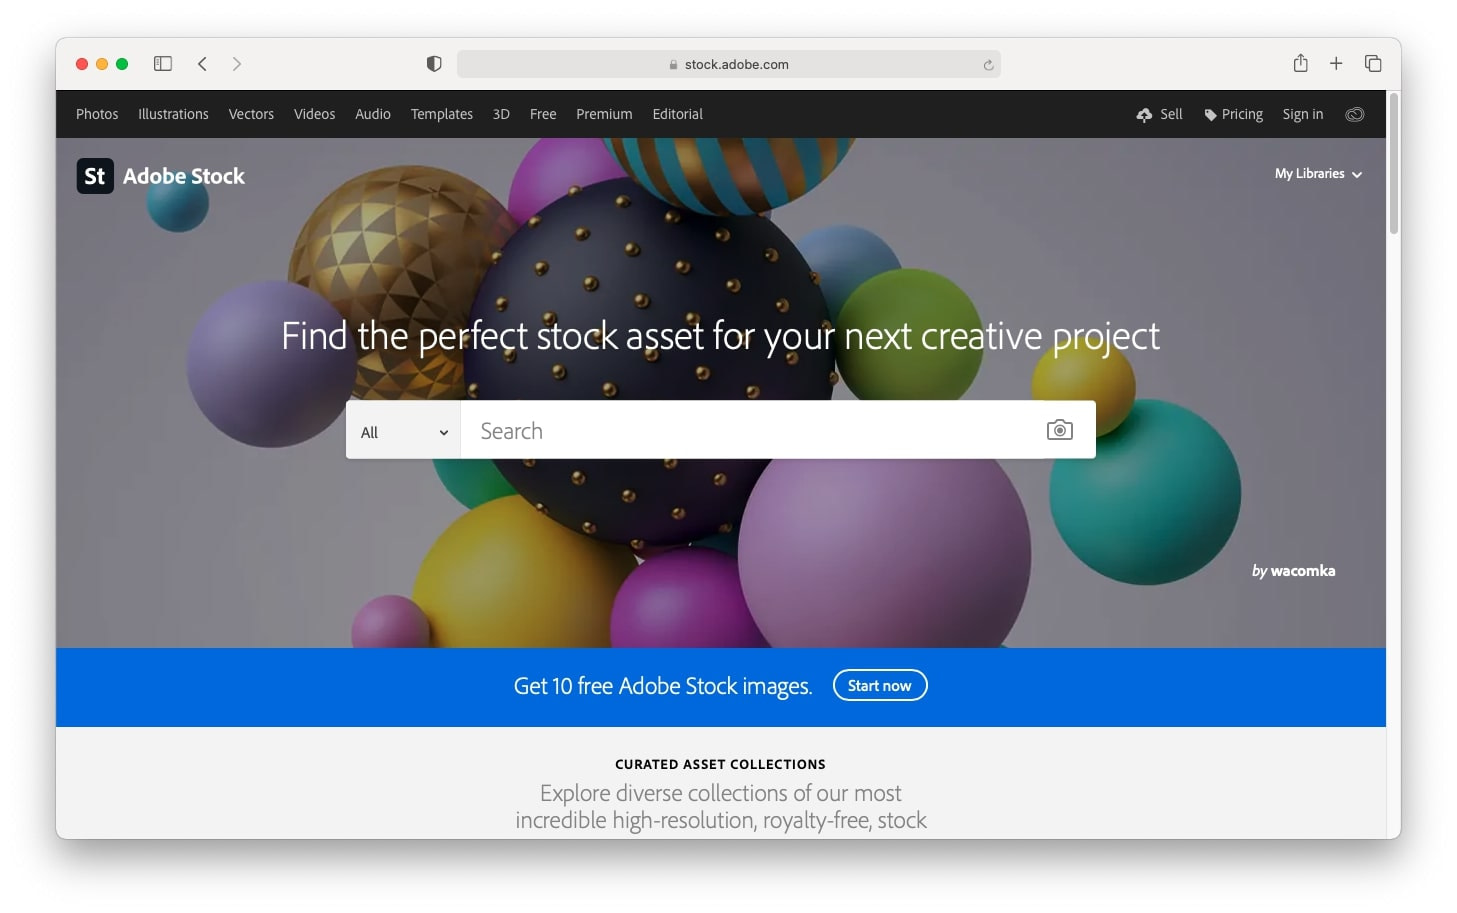 Best gifts for a designer: Adobe Stock subscription